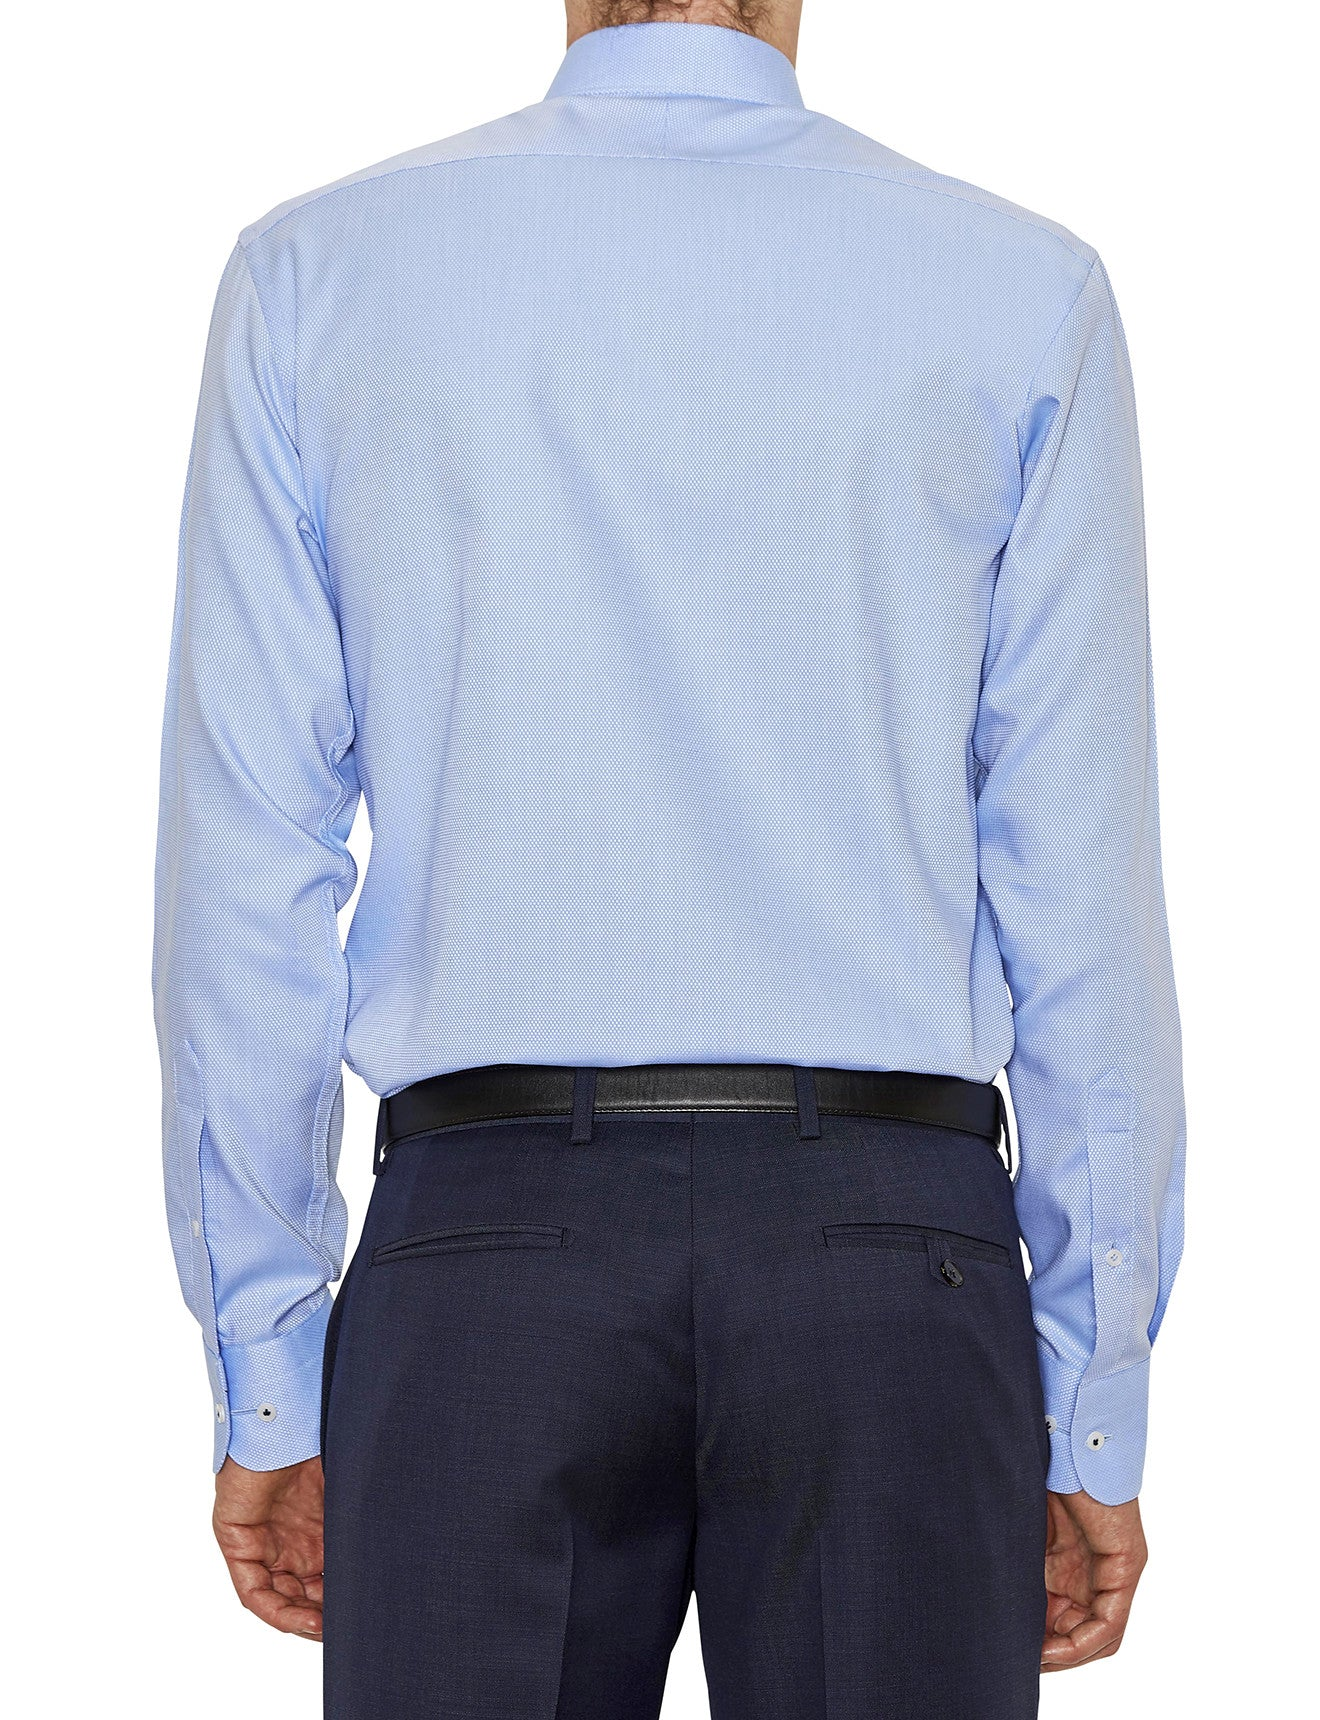 Pioneer Business Shirt in Blue